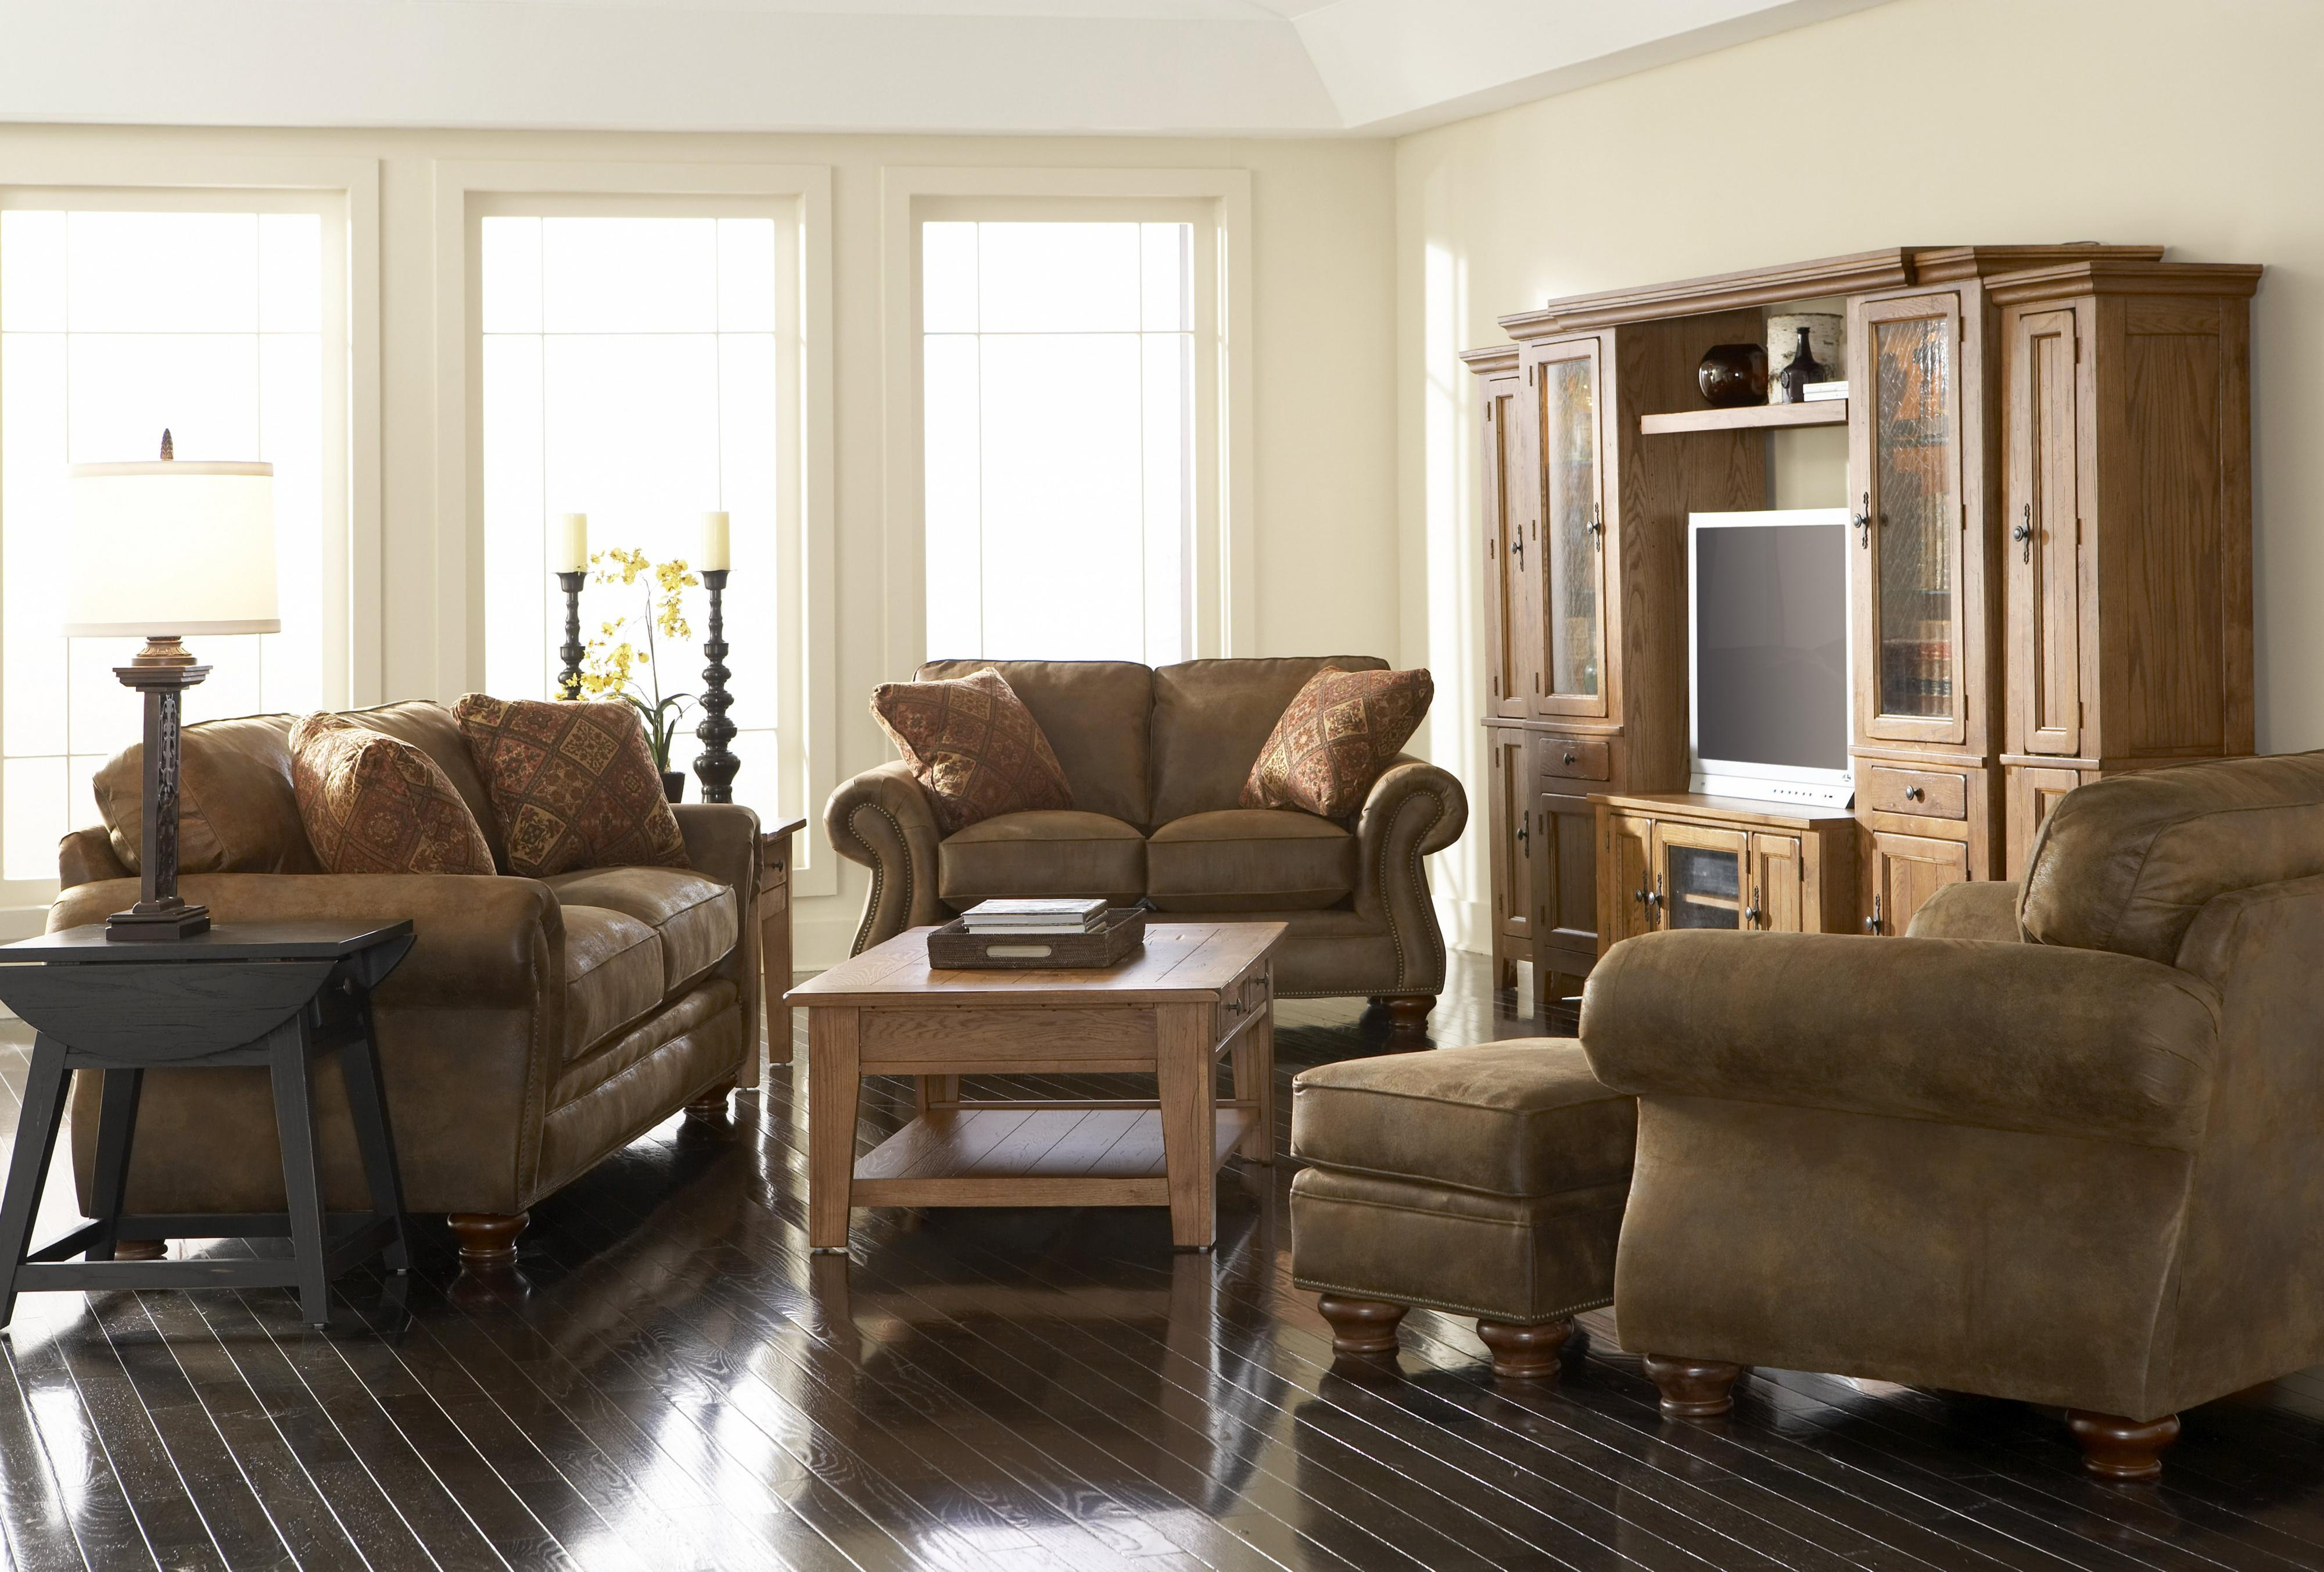 Bullard Furniture | Furniture Southern Pines Nc | Bullard Furniture Fayetteville